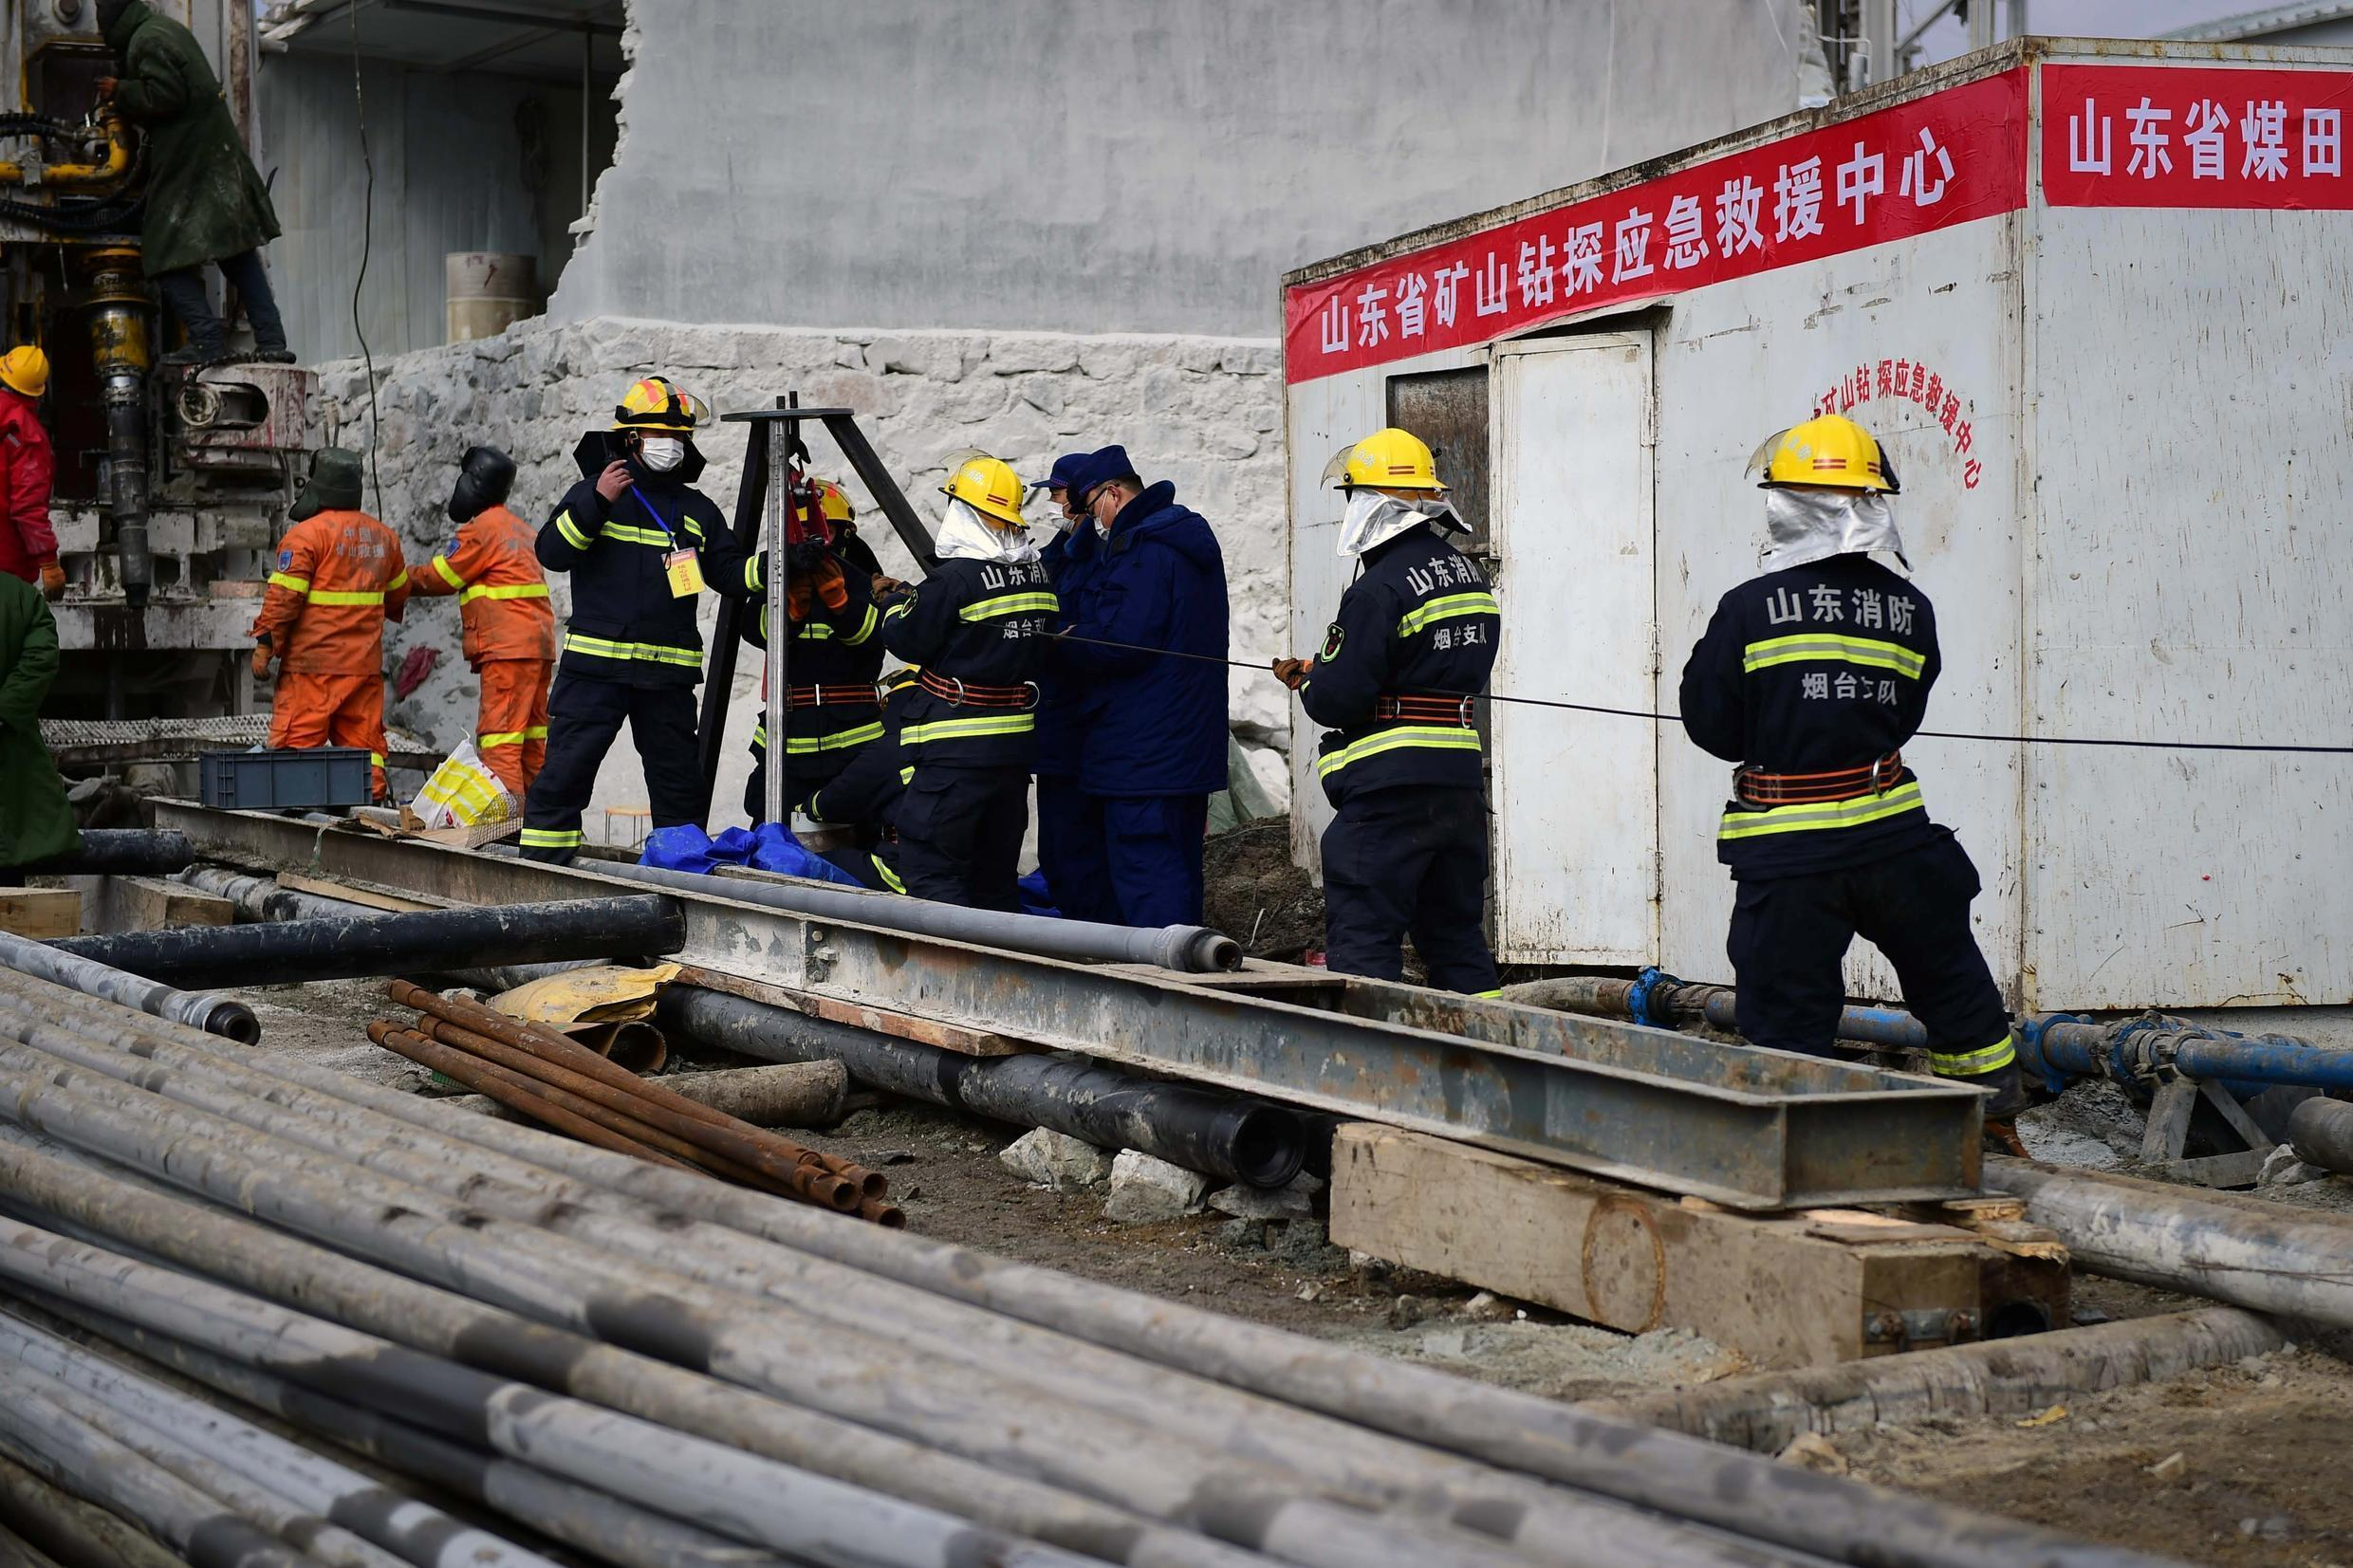 A rescue team works on retrieving 22 miners trapped underground in eastern China's Shandong province